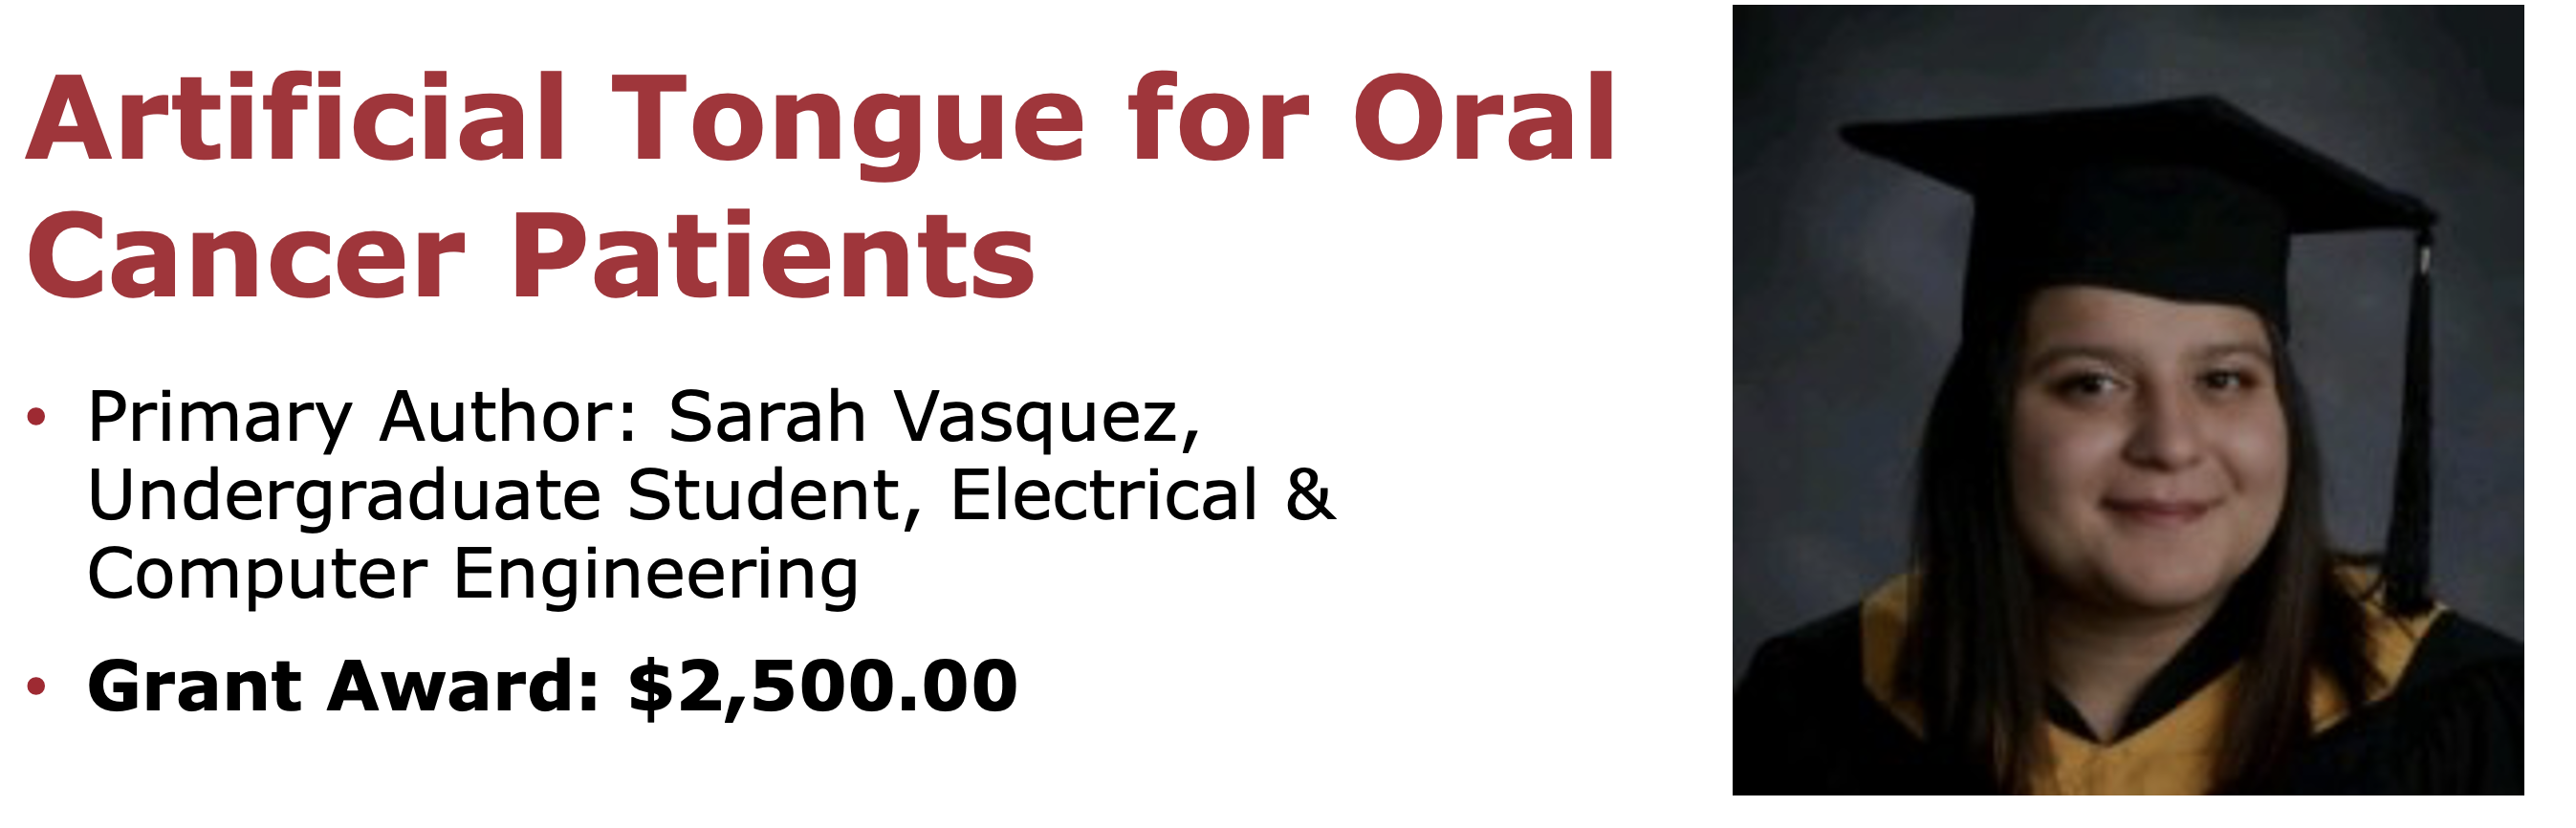 Artificial Tongue for Oral Cancer Patients